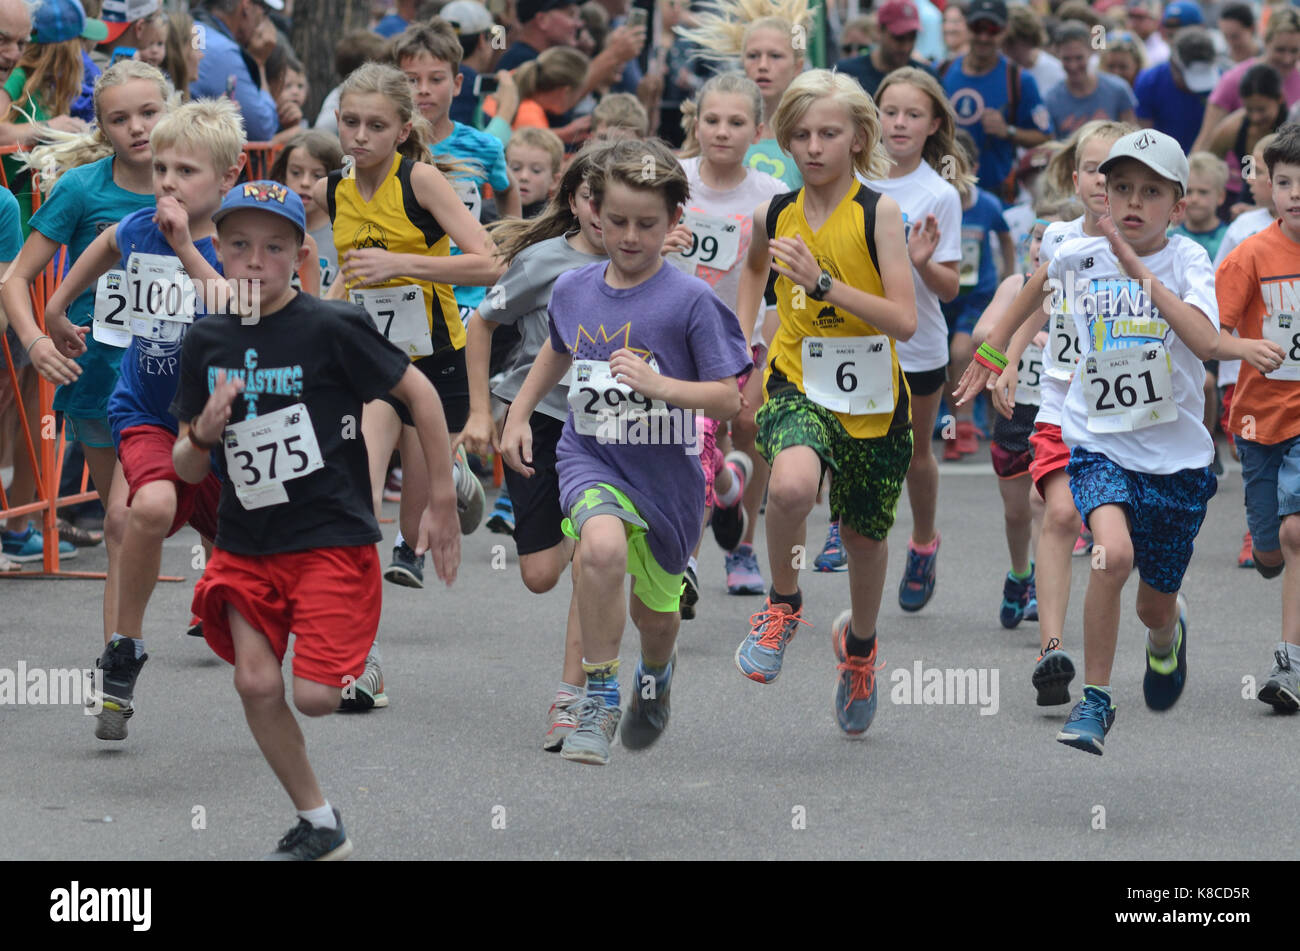 Young racers take flight at the start of the Kids Race during the Pearl Street Mile. The children and adolescents - Stock Image